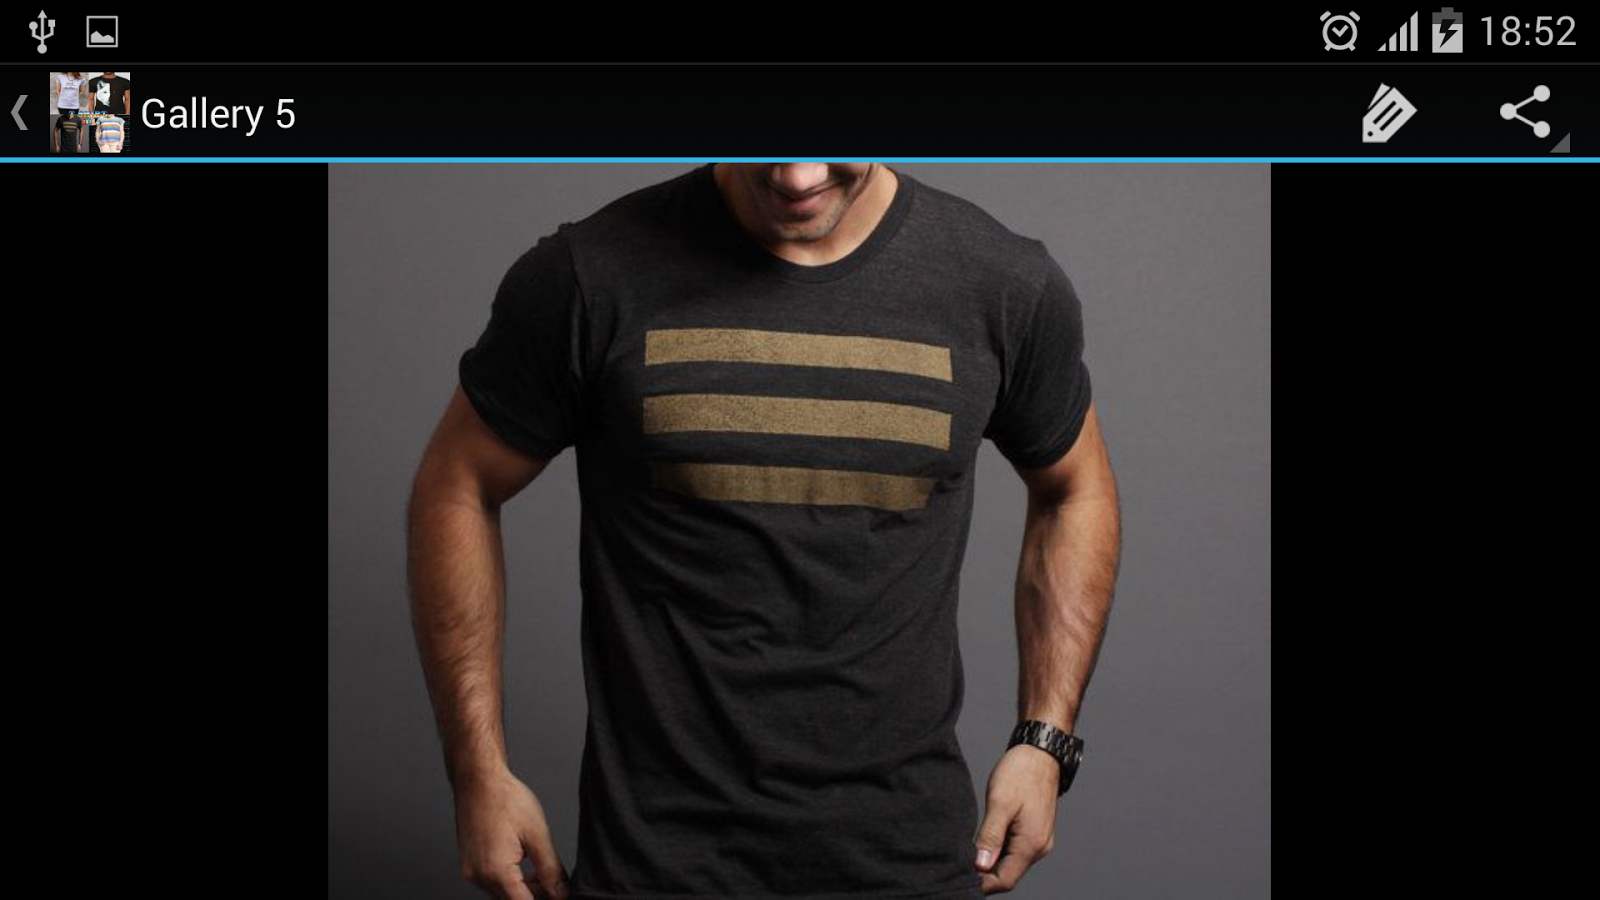 T-shirt Ideas - Android Apps on Google Play